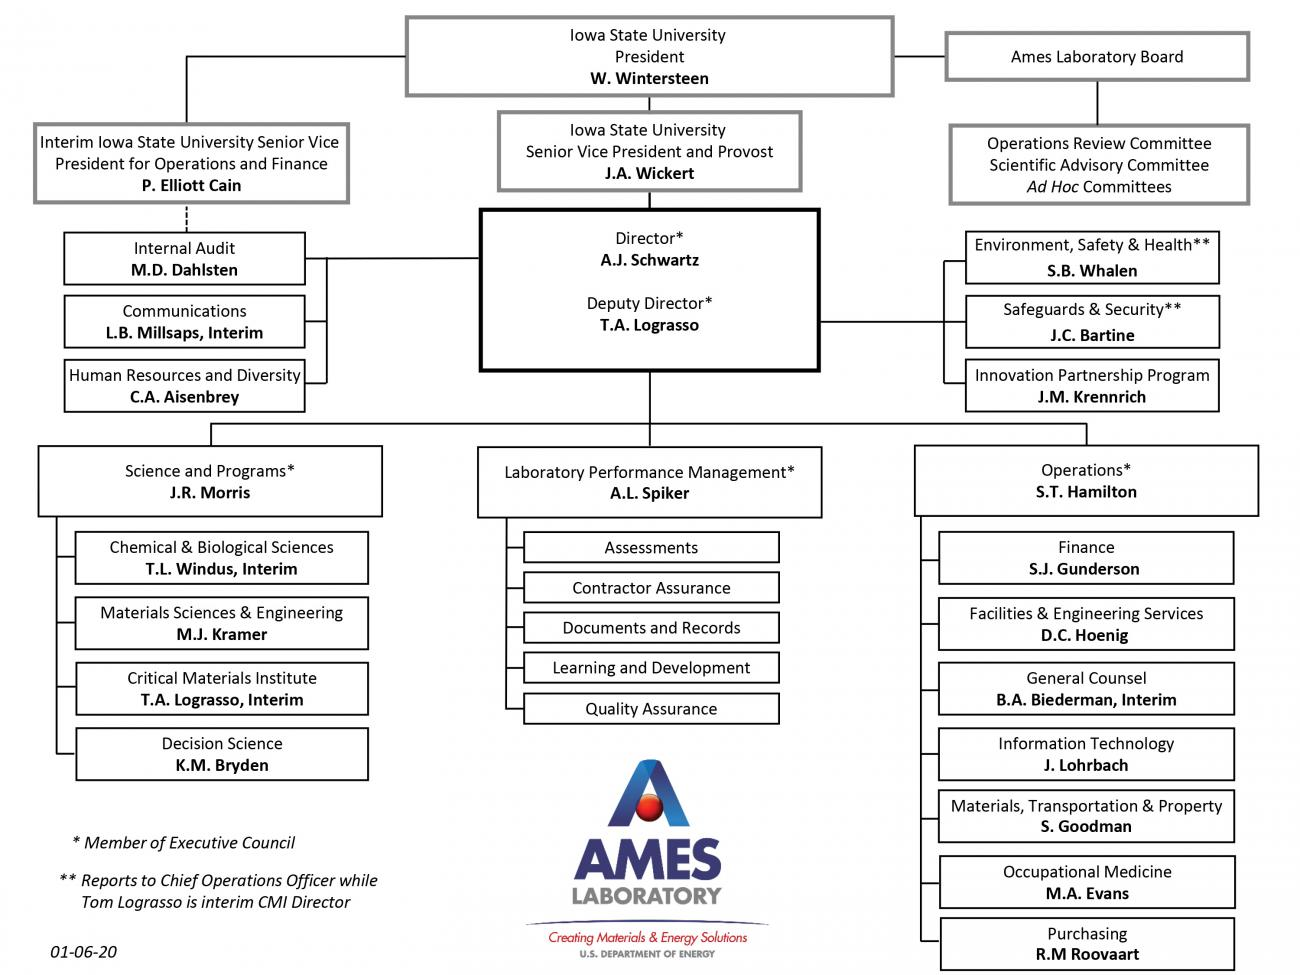 Ames Laboratory Organization Chart